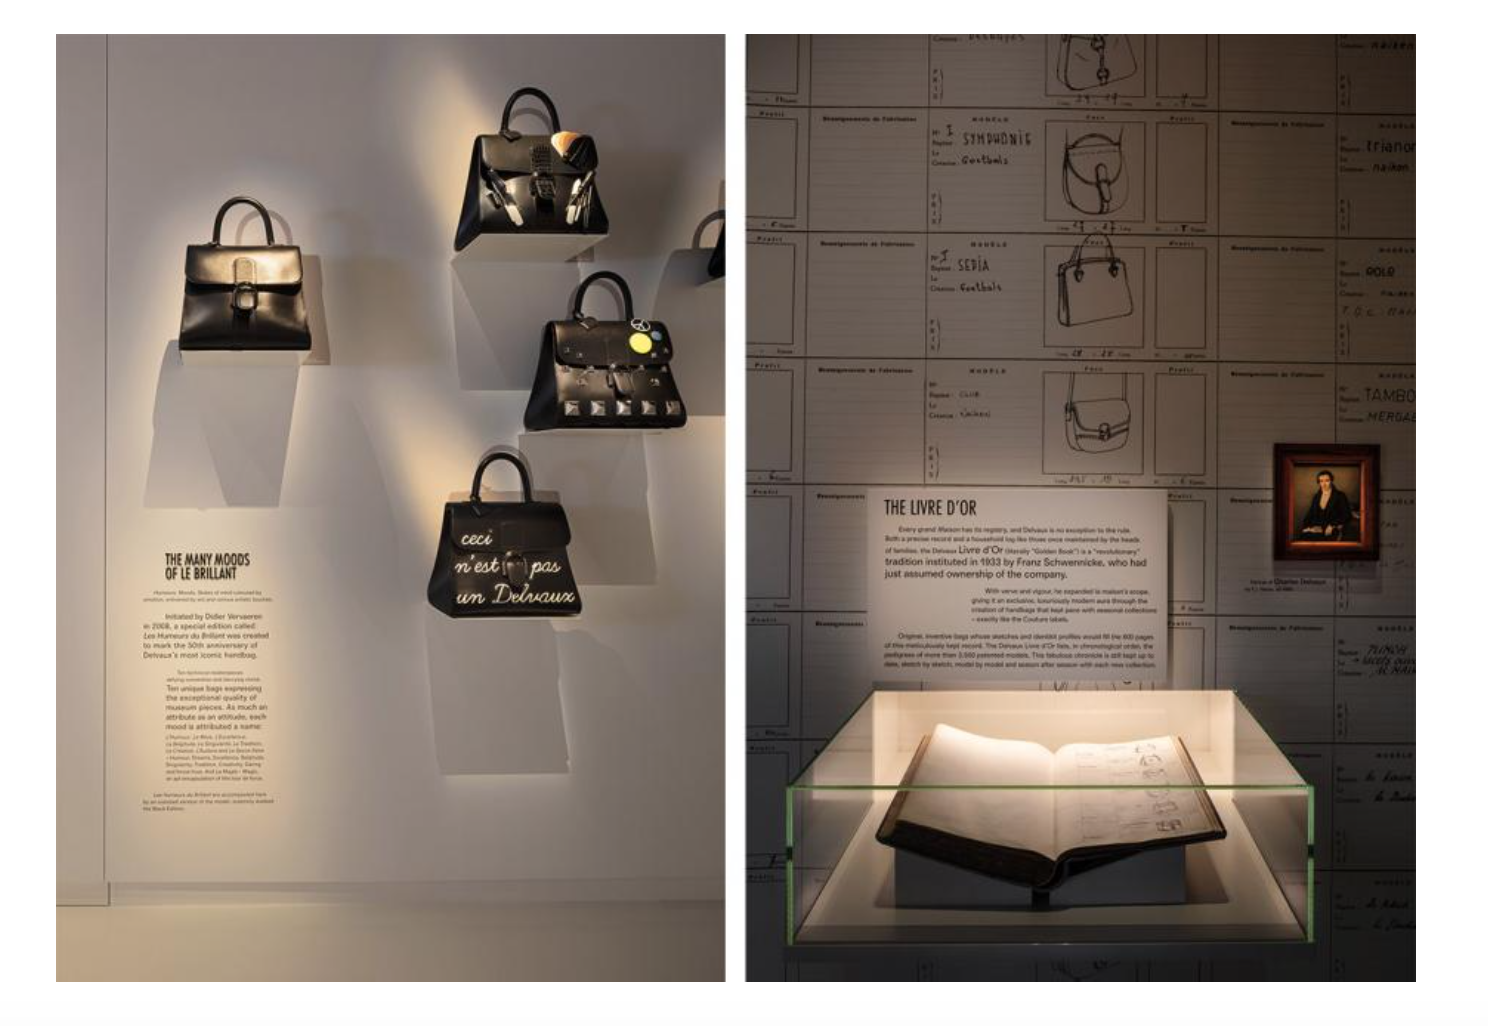 Delvaux opens Brussels' museum with a surreal touch